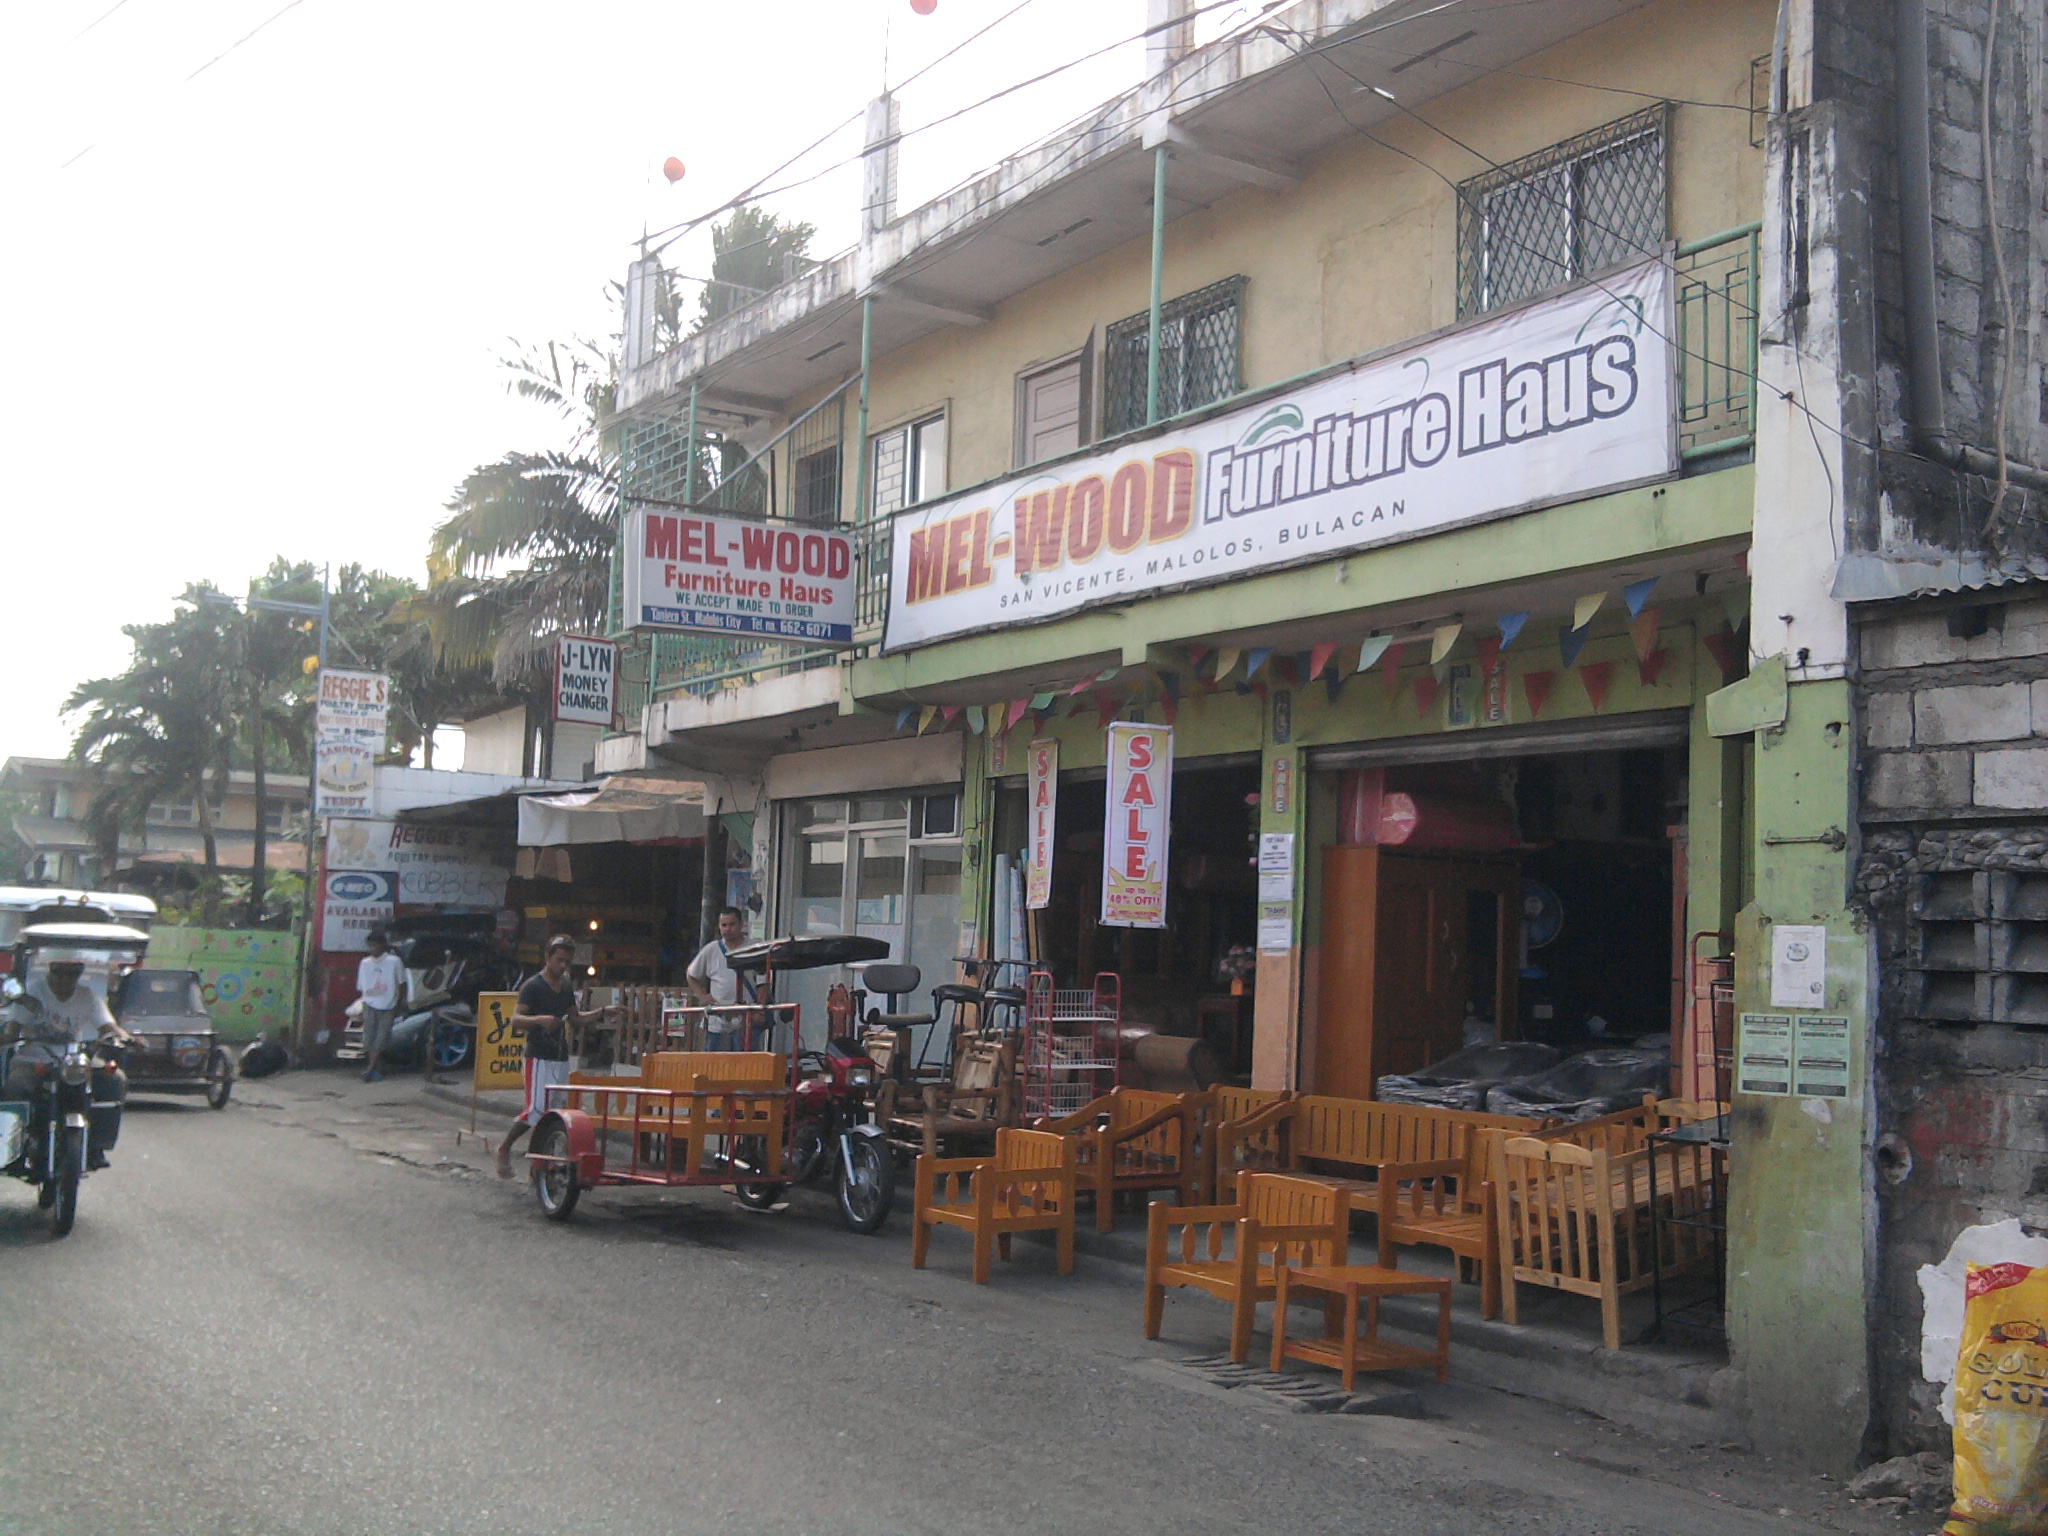 File:Mel Wood Furniture Haws, San Vicente, Malolos City, Bulacan